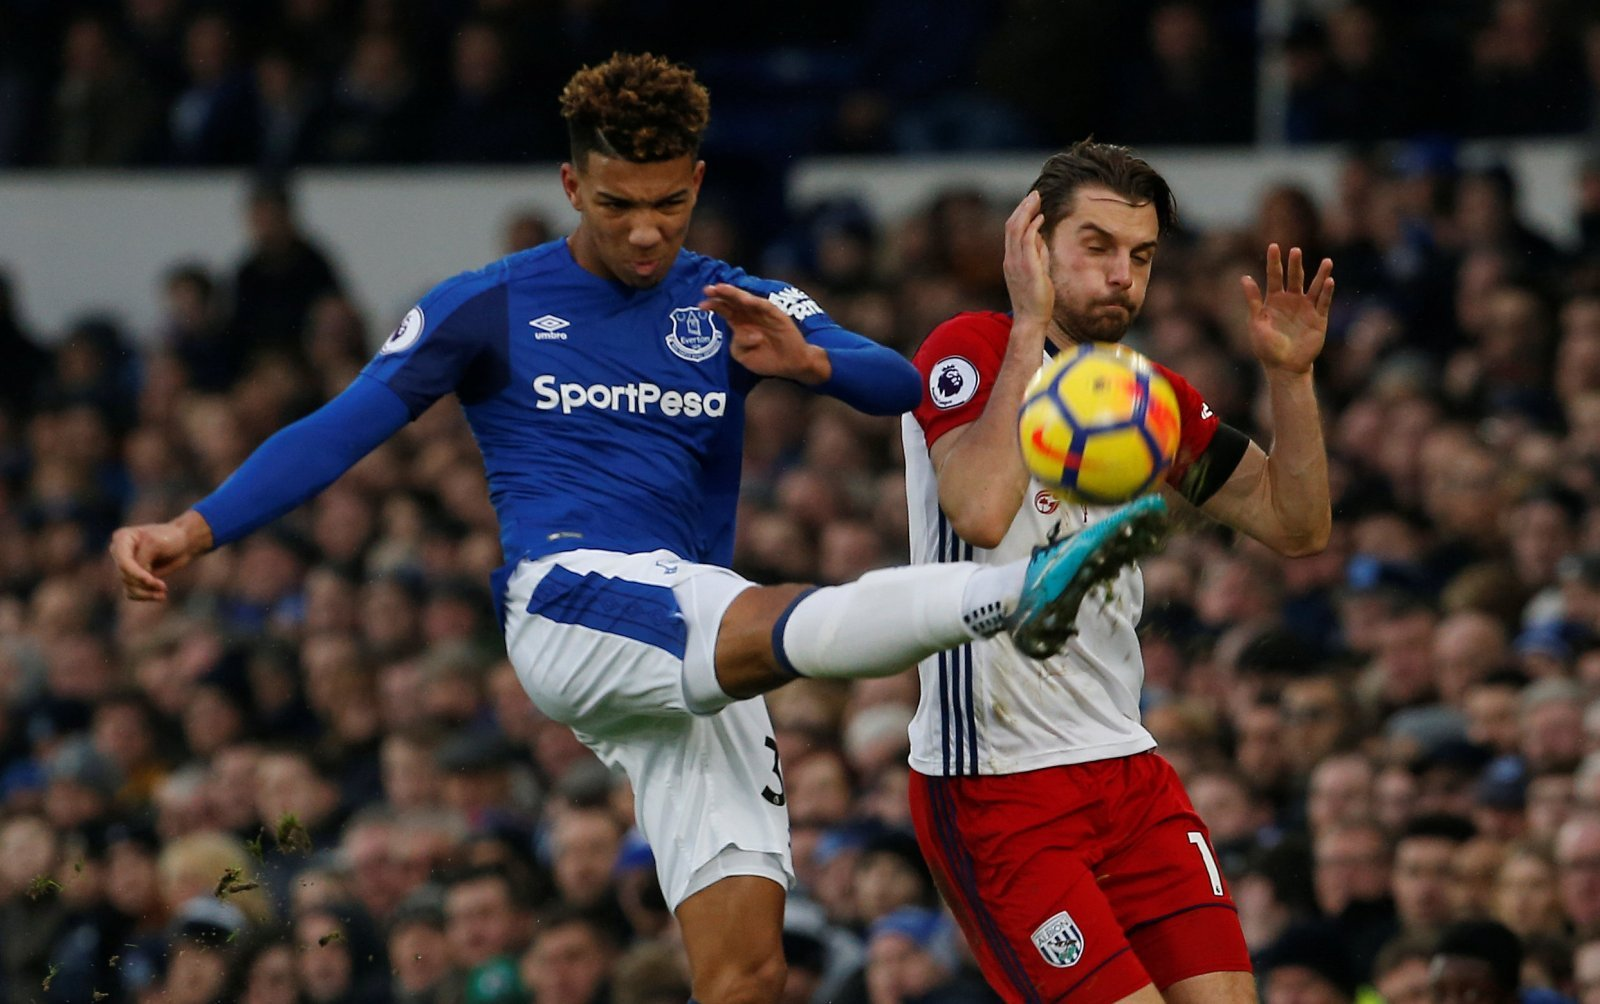 Holgate signing for West Brom may be defining moment in Championship title race